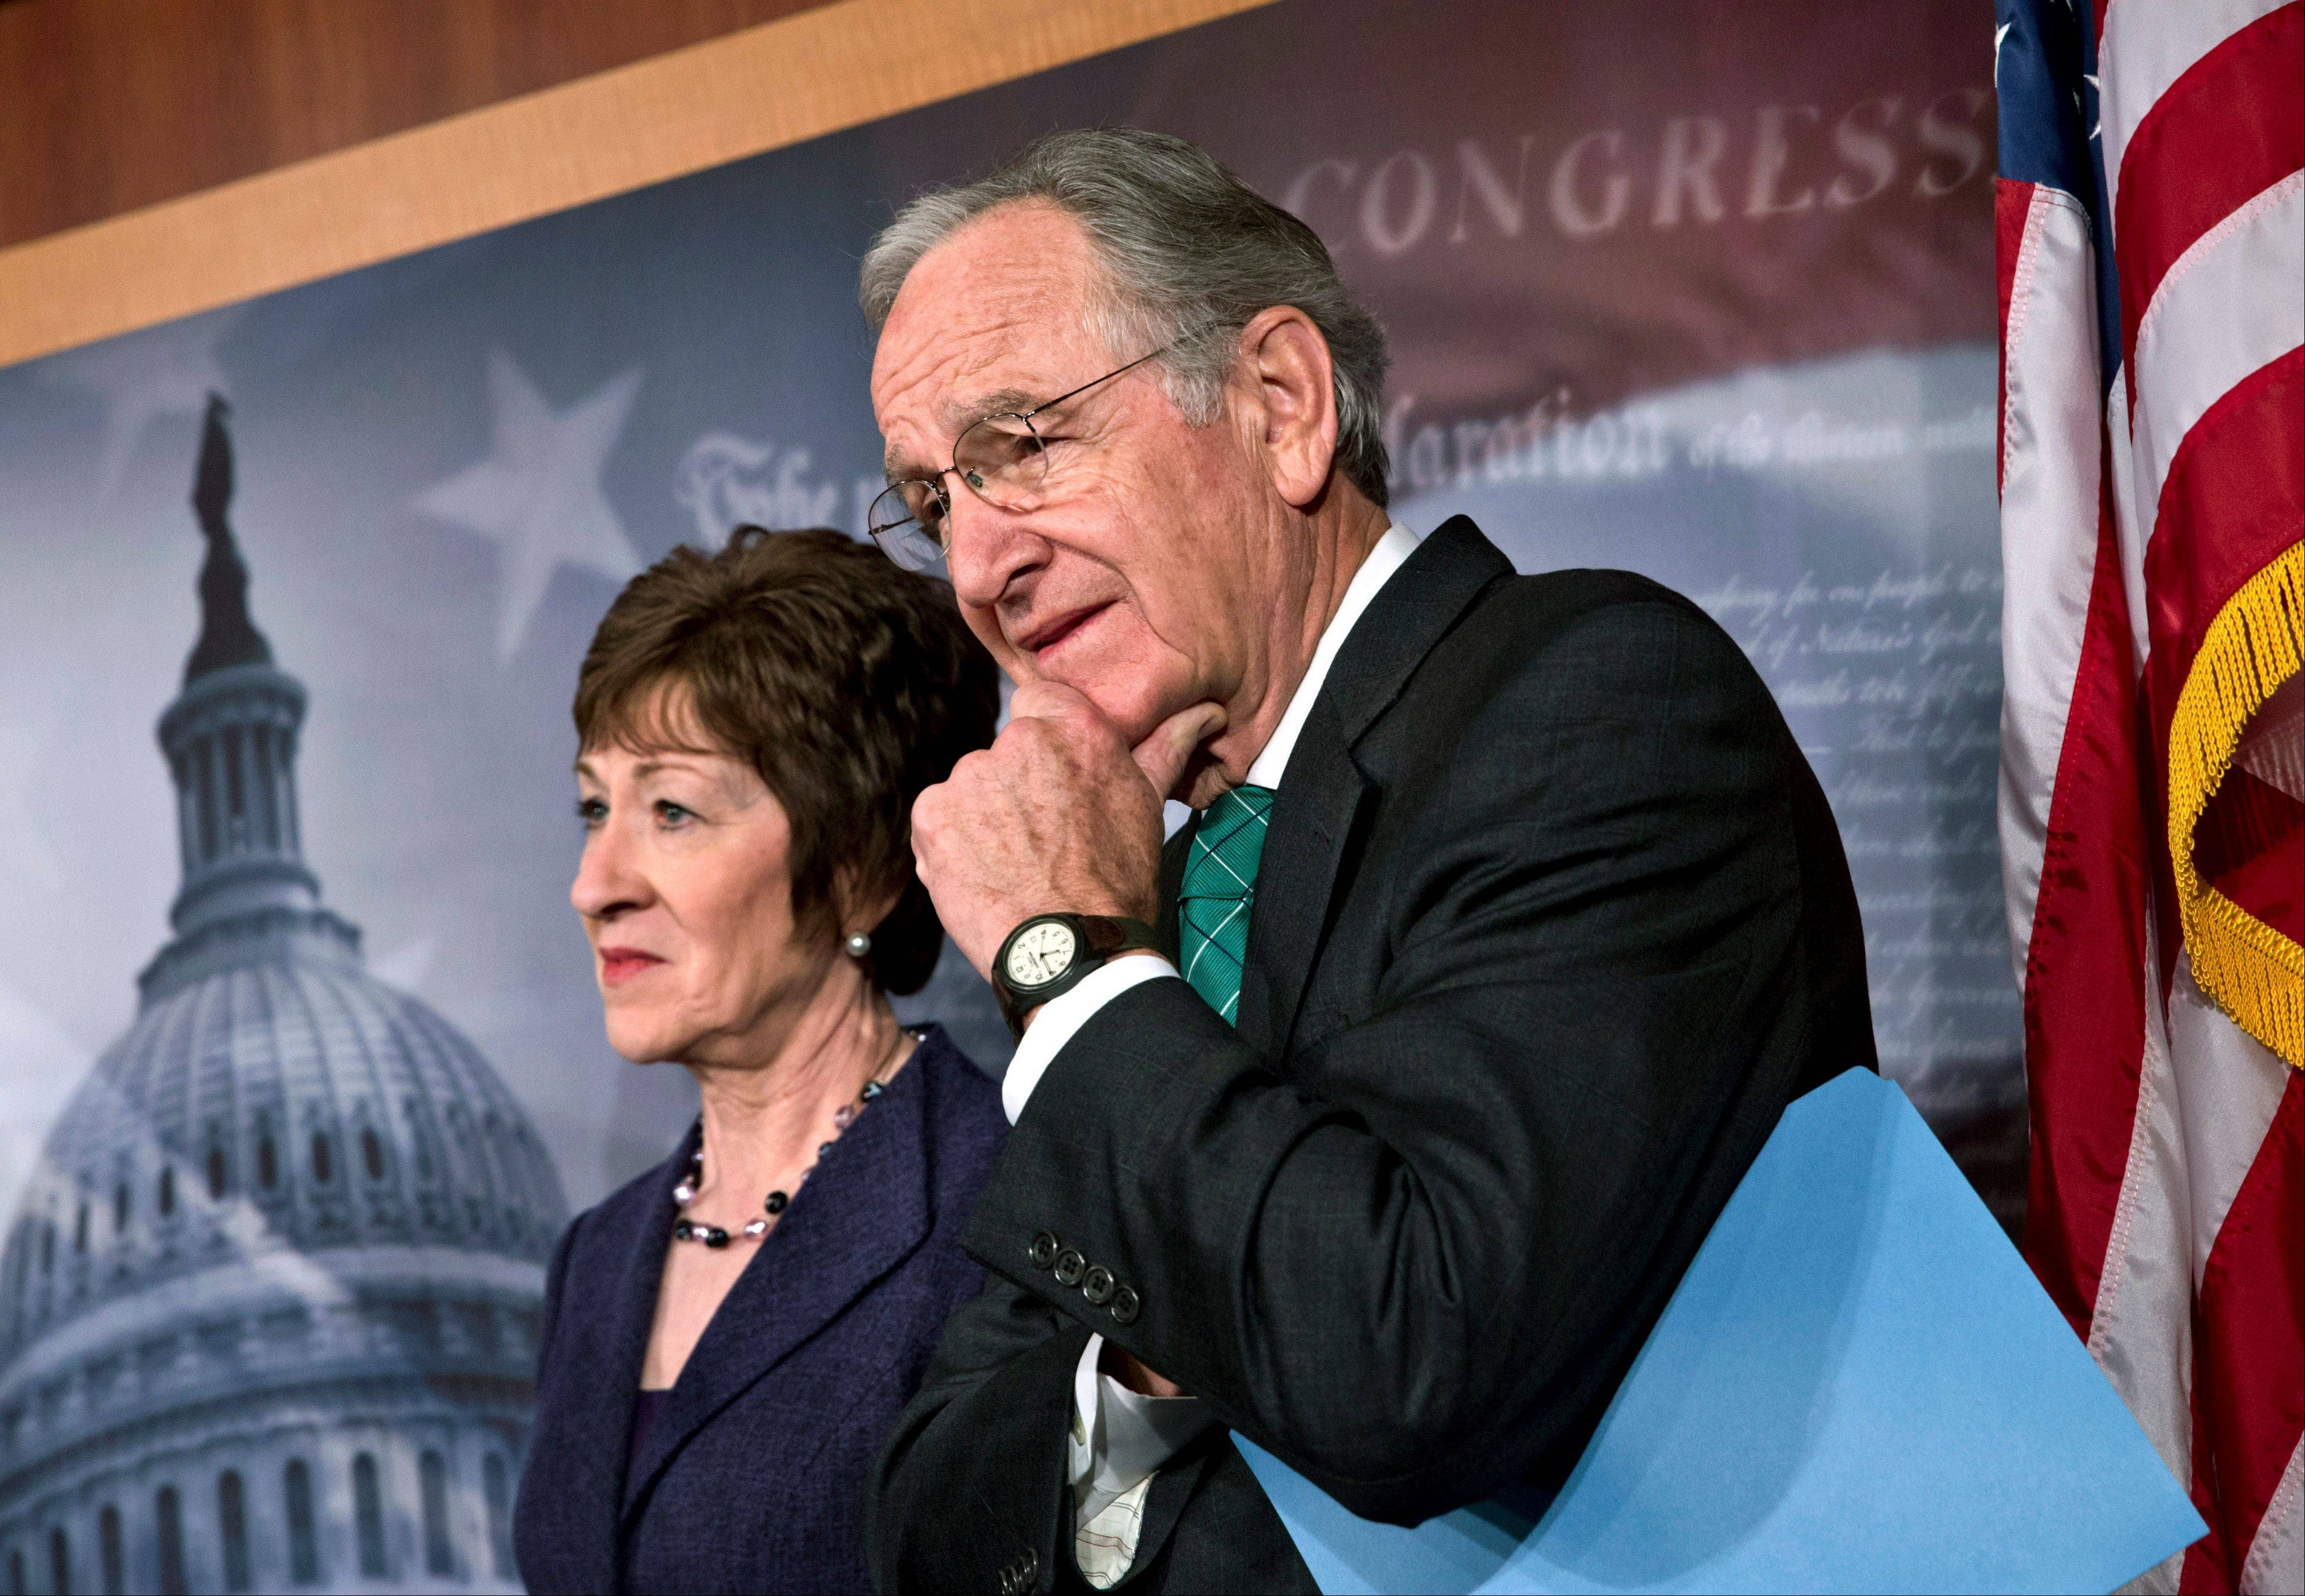 Sen. Tom Harkin, right, chairman of the Health, Education, Labor, and Pensions Committee, stands with Sen. Susan Collins earlier this week, just after the Senate cleared a major hurdle and agreed to proceed to debate a bill that would prohibit workplace discrimination against gay, bisexual and transgender Americans.